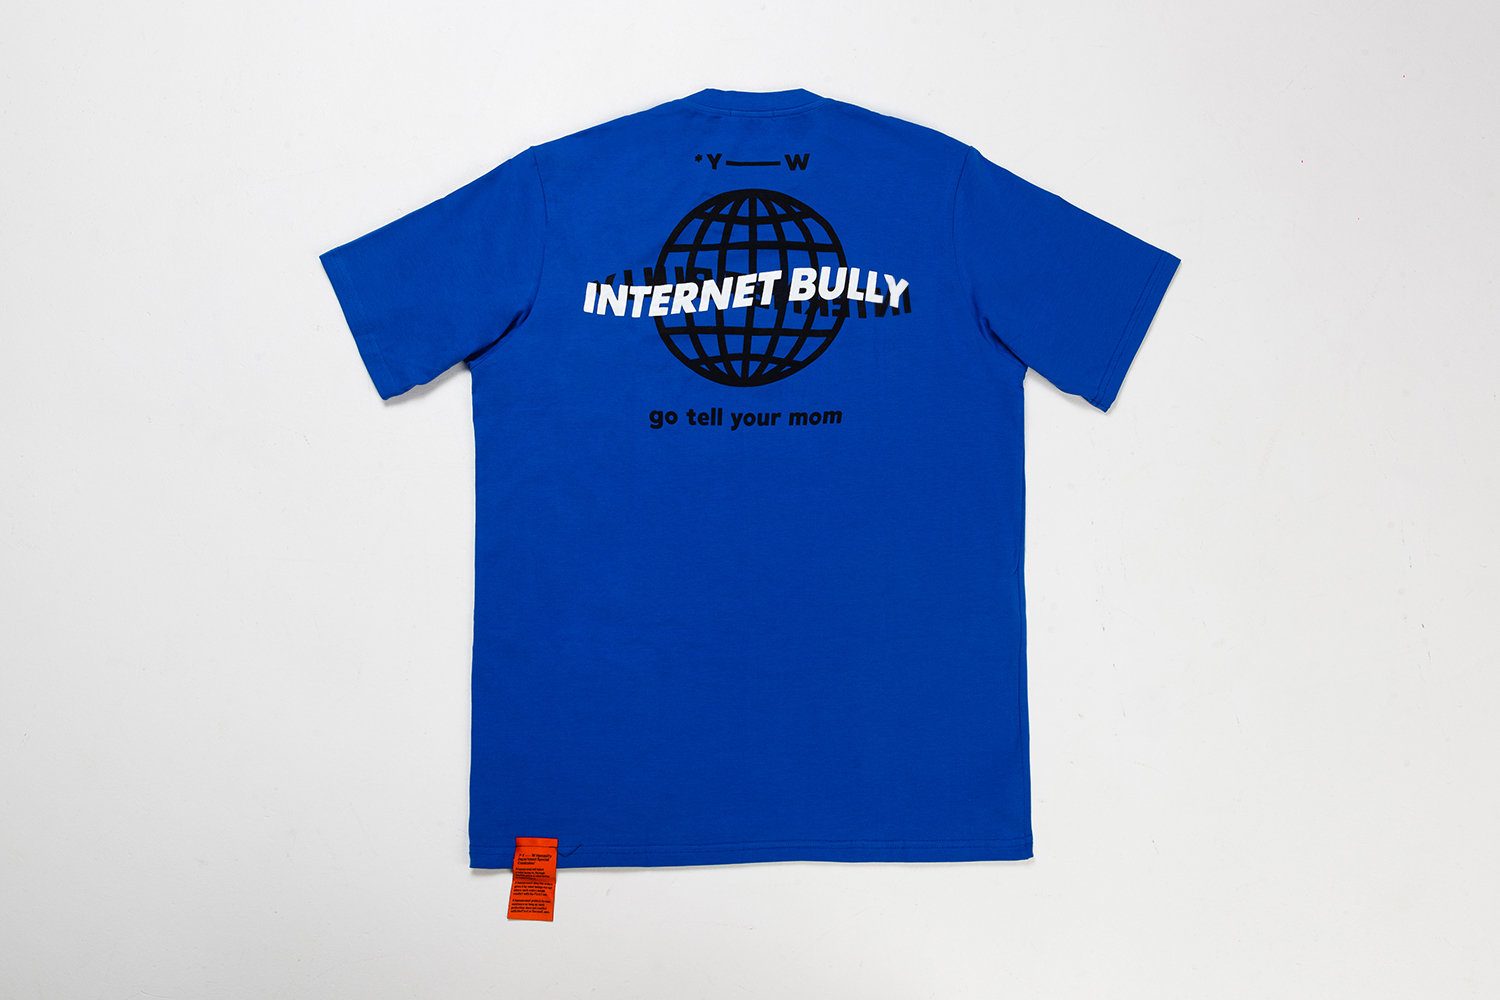 Internet bully (blue)